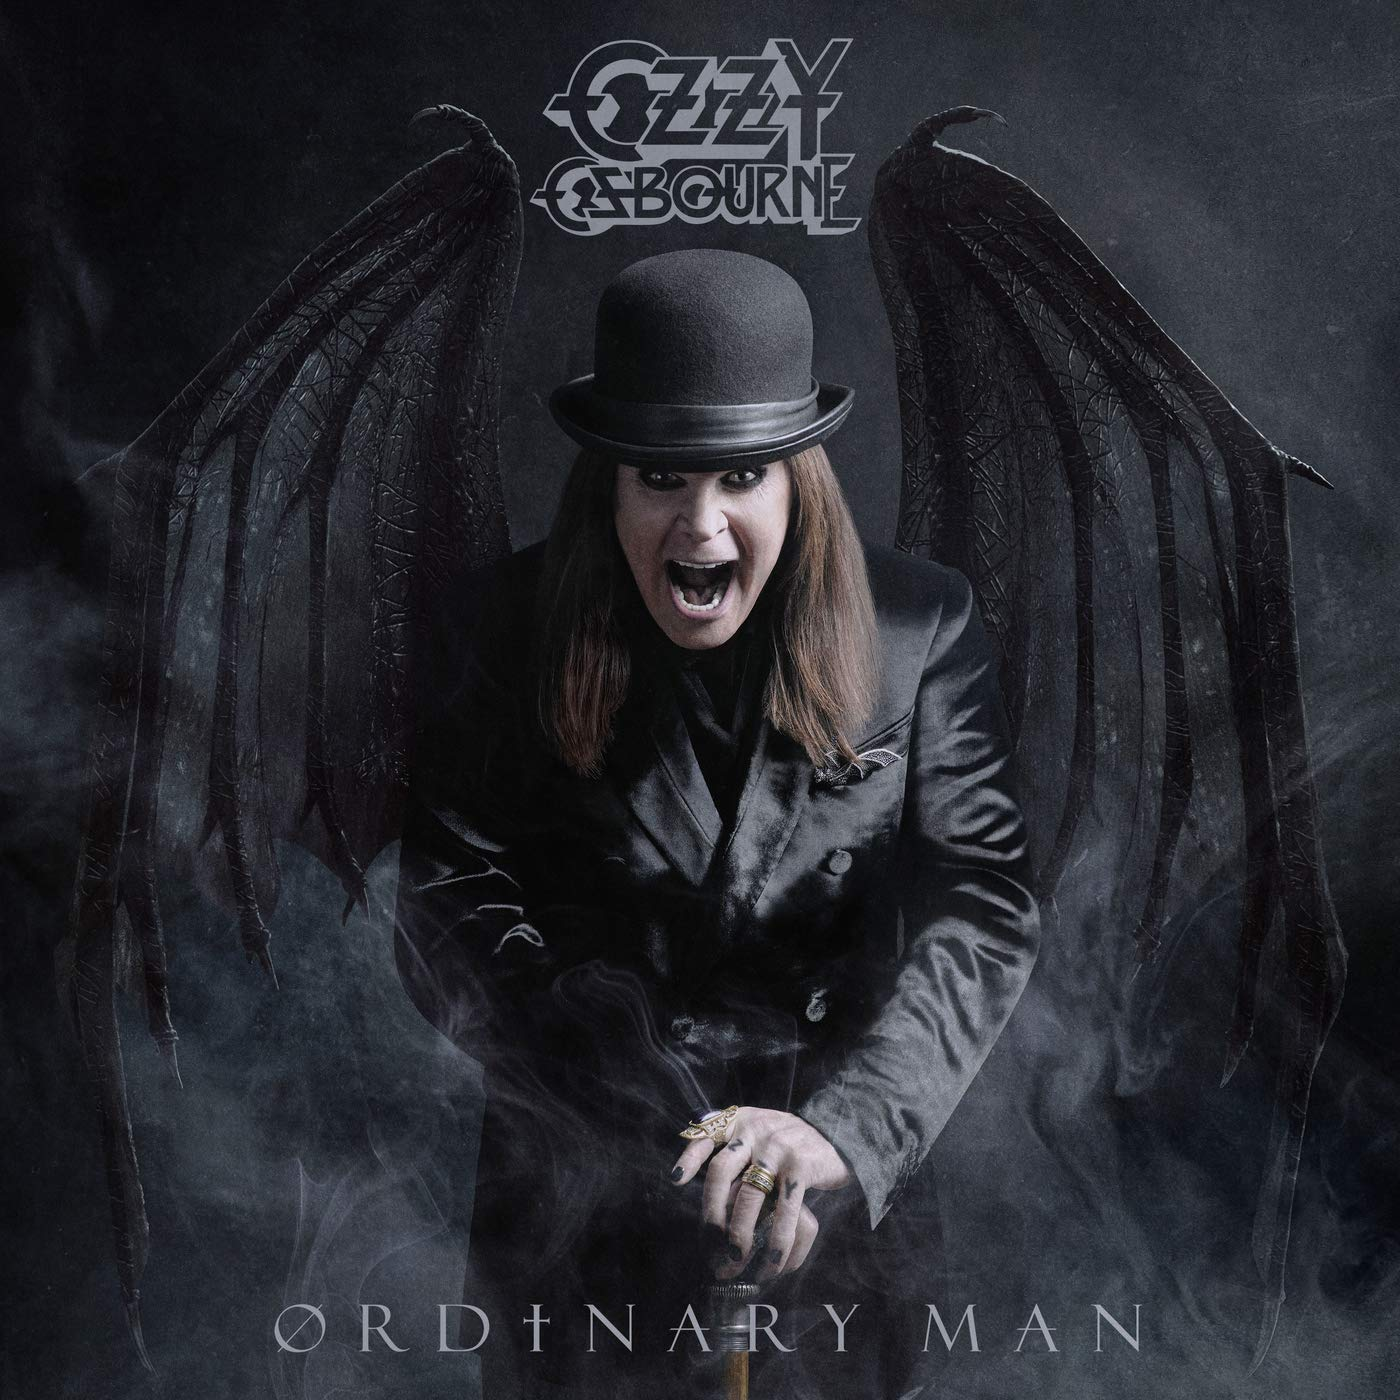 Ozzy Osbourne – Ordinary Man (2020) [FLAC]